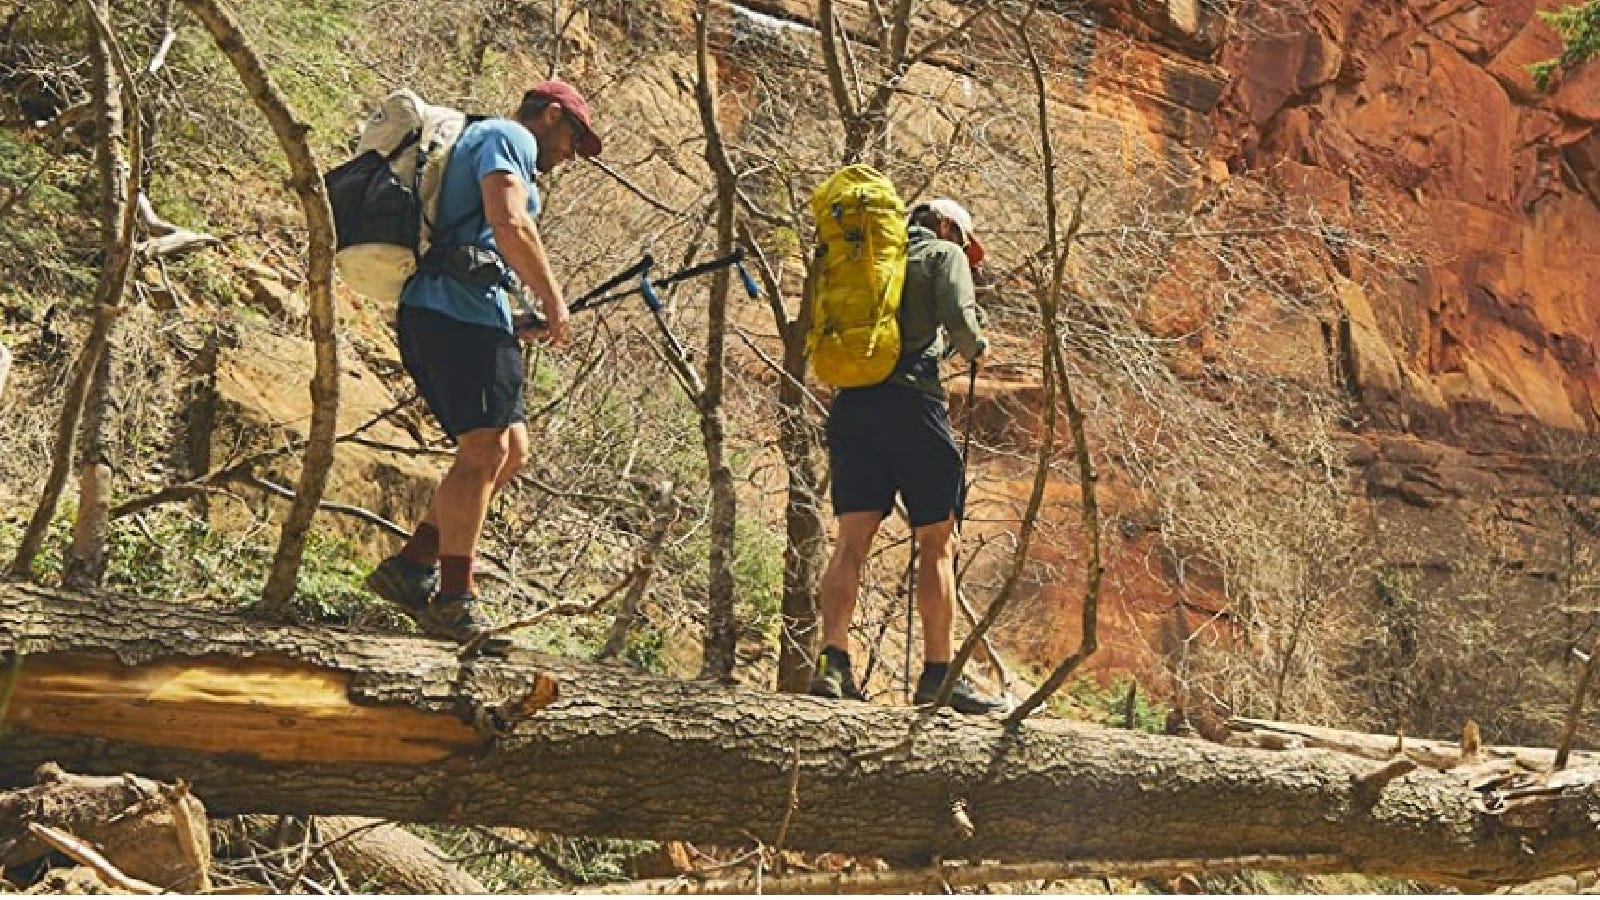 Two guys out on a hike, walking along a fallen tree with their grippy Merrell hiking shoes.